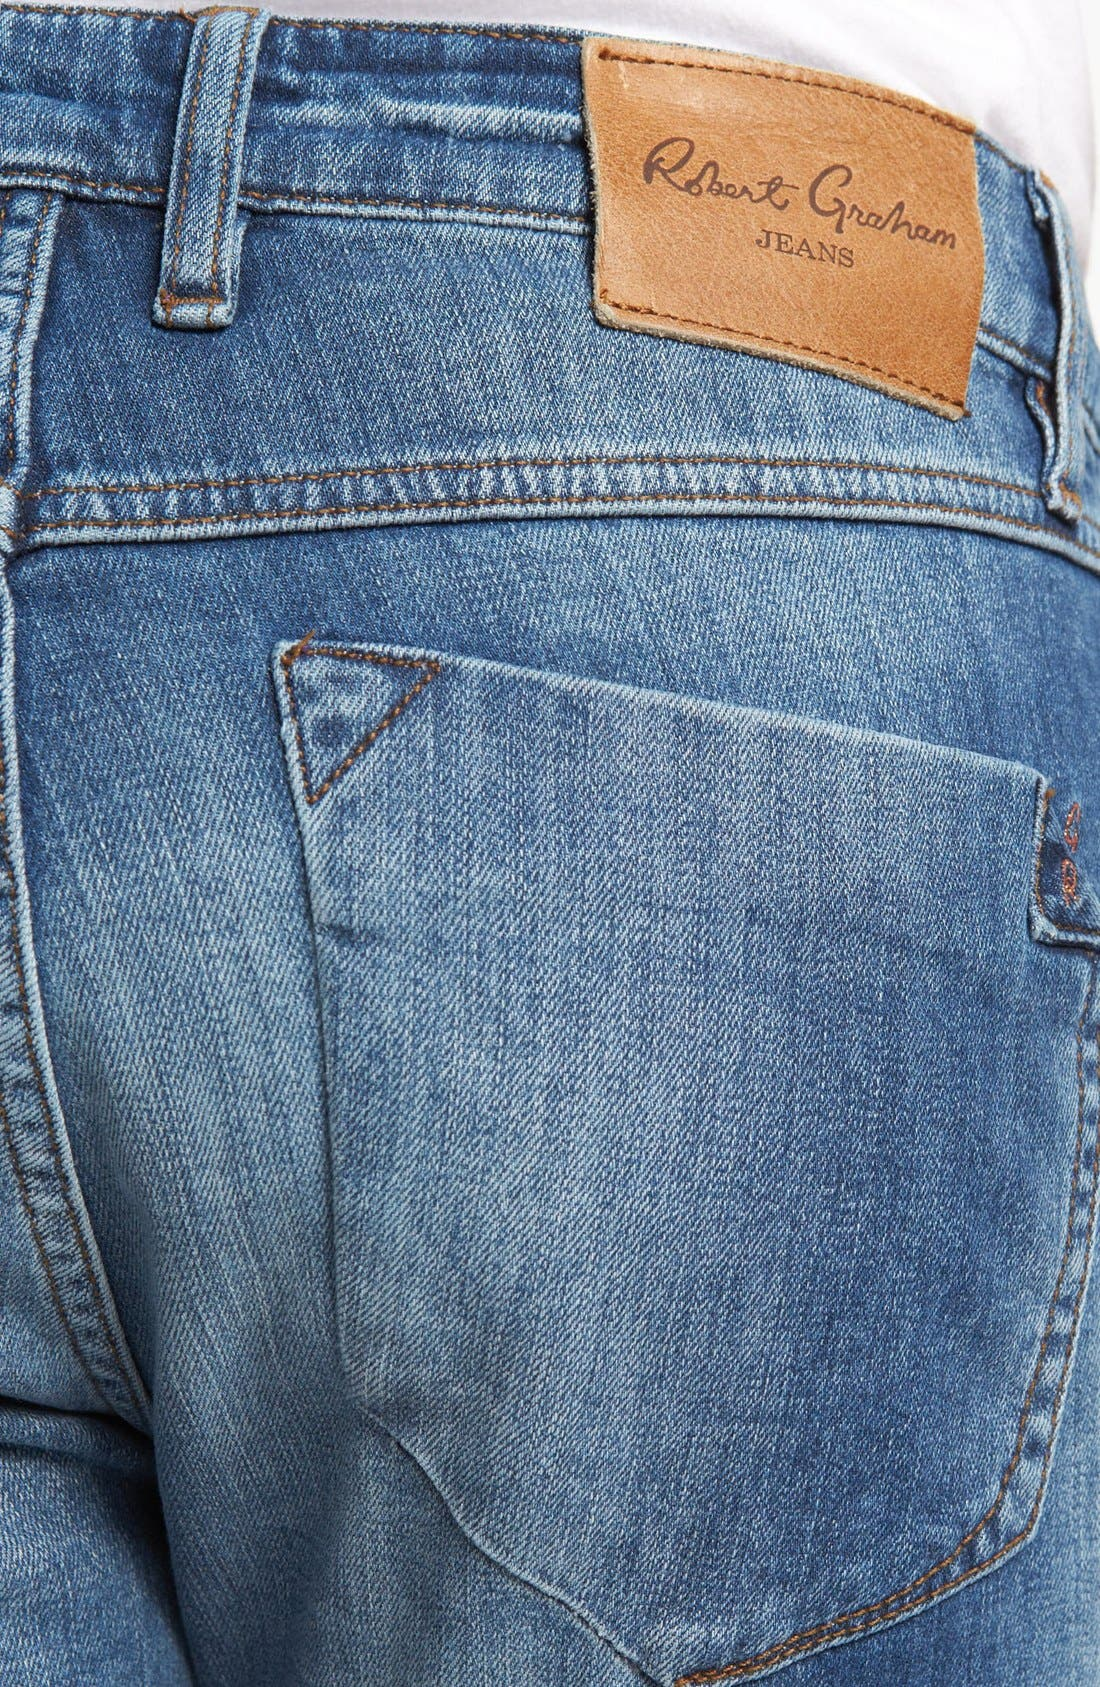 Alternate Image 4  - Robert Graham 'Stretchin' Out' Slim Fit Jeans (Indigo)